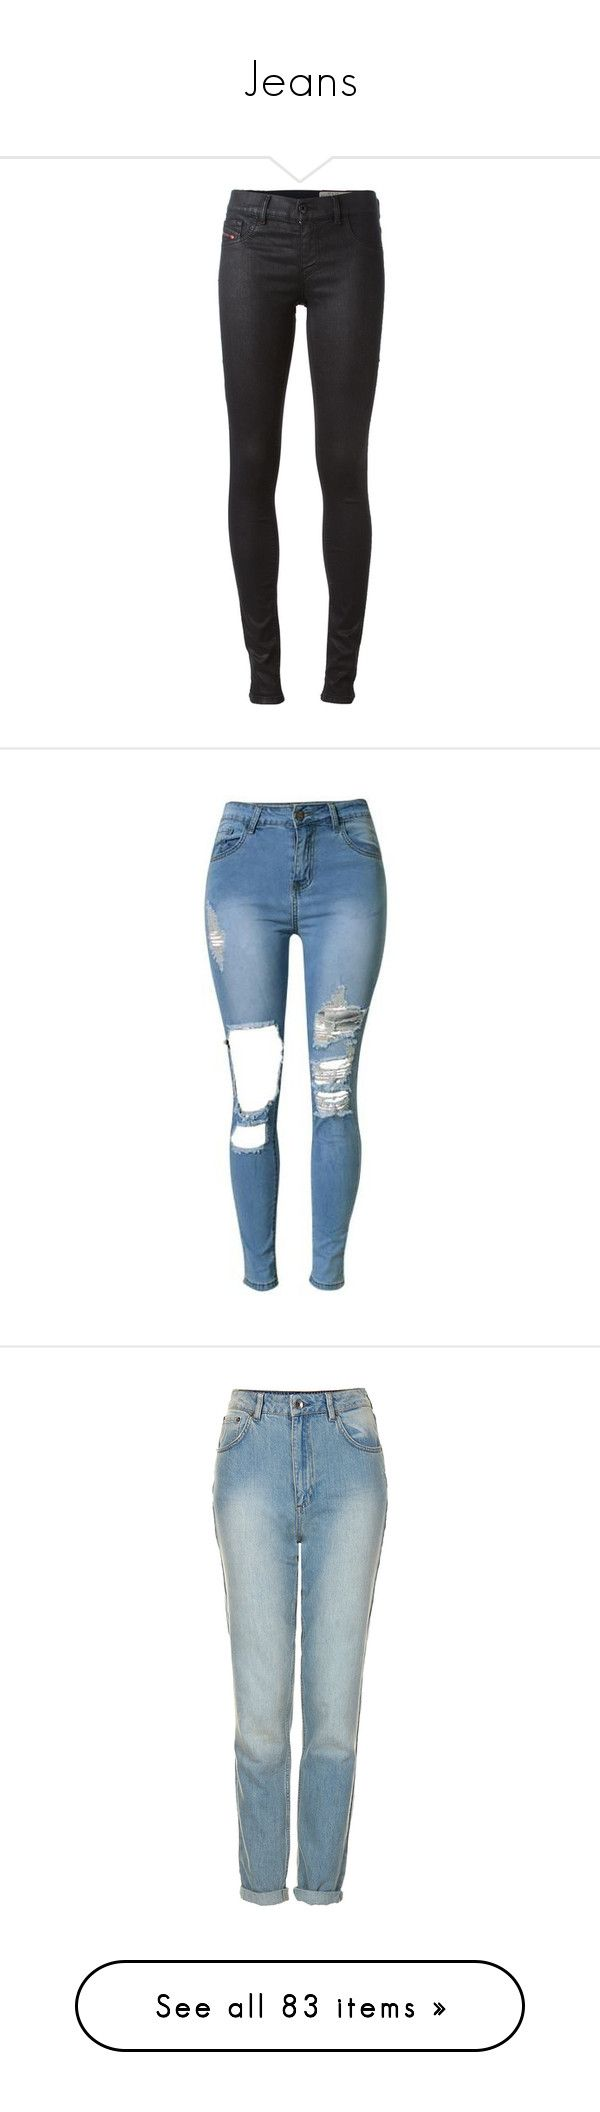 """Jeans"" by bambiie ❤ liked on Polyvore featuring jeans, pants, black, cut skinny jeans, skinny jeans, diesel jeans, skinny fit jeans, denim skinny jeans, bottoms and pantalones"